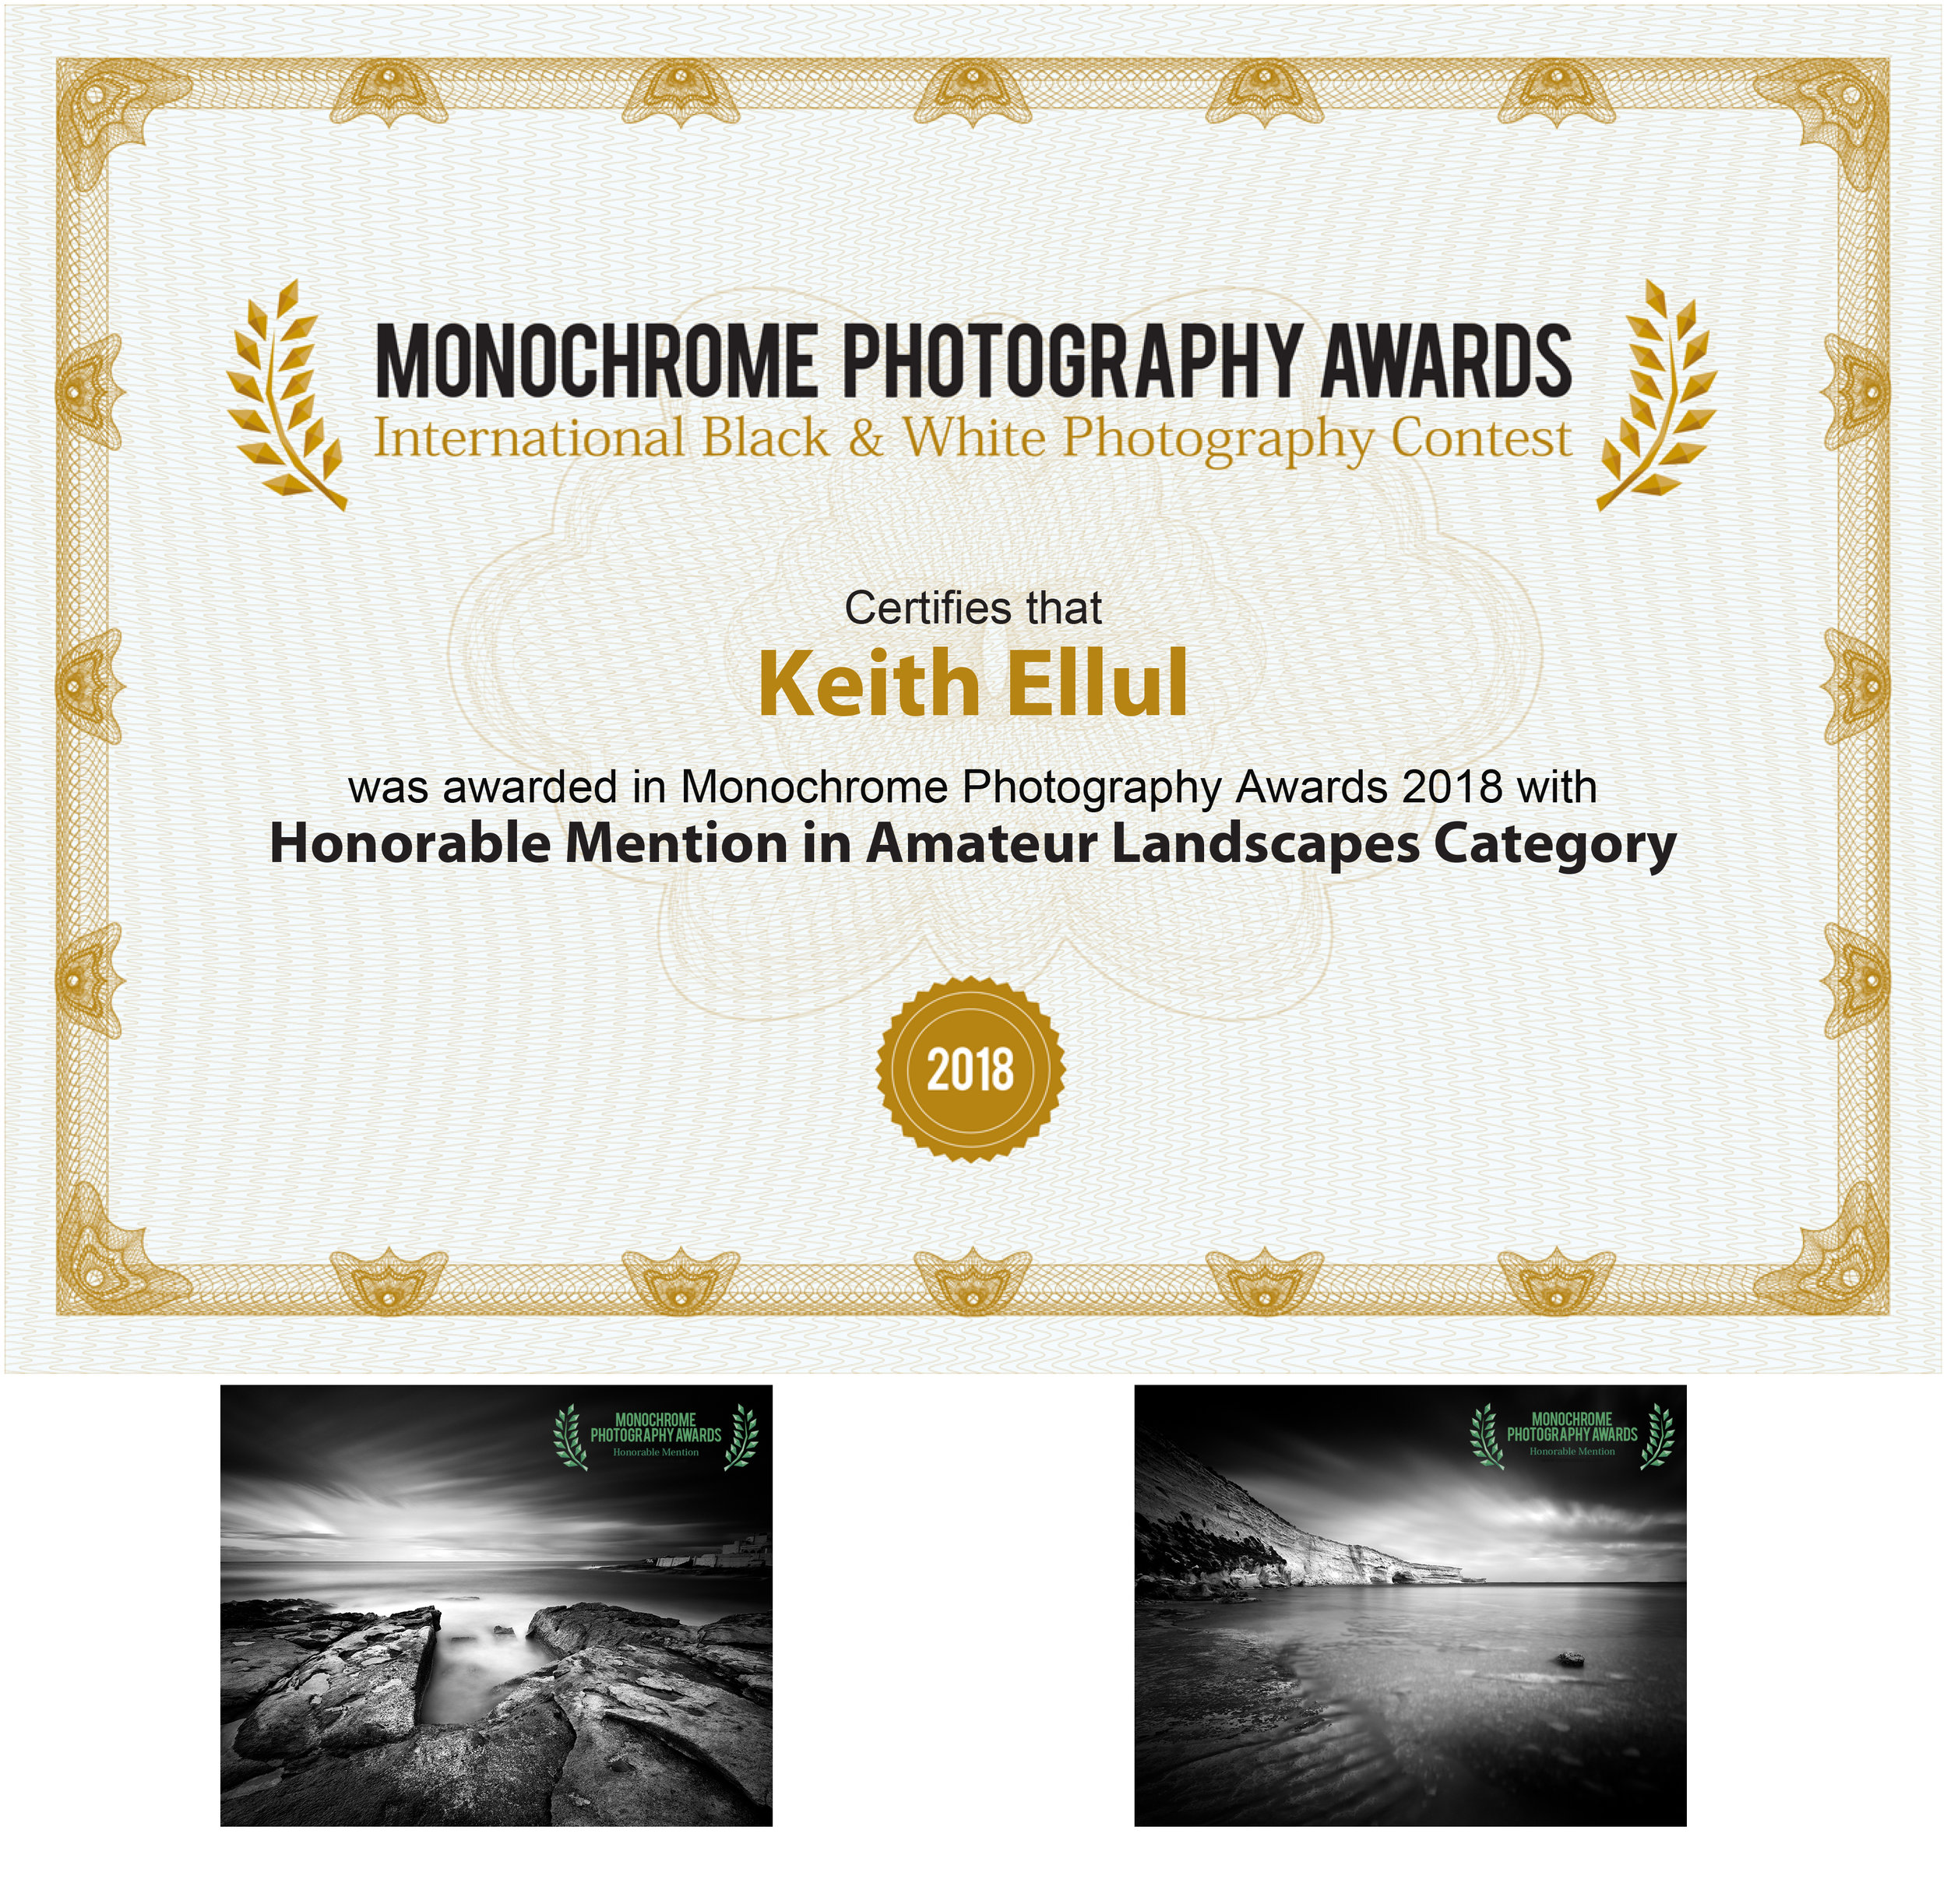 Monochrome Photography Awards 2018 - Honorable Mention - Landscape Category